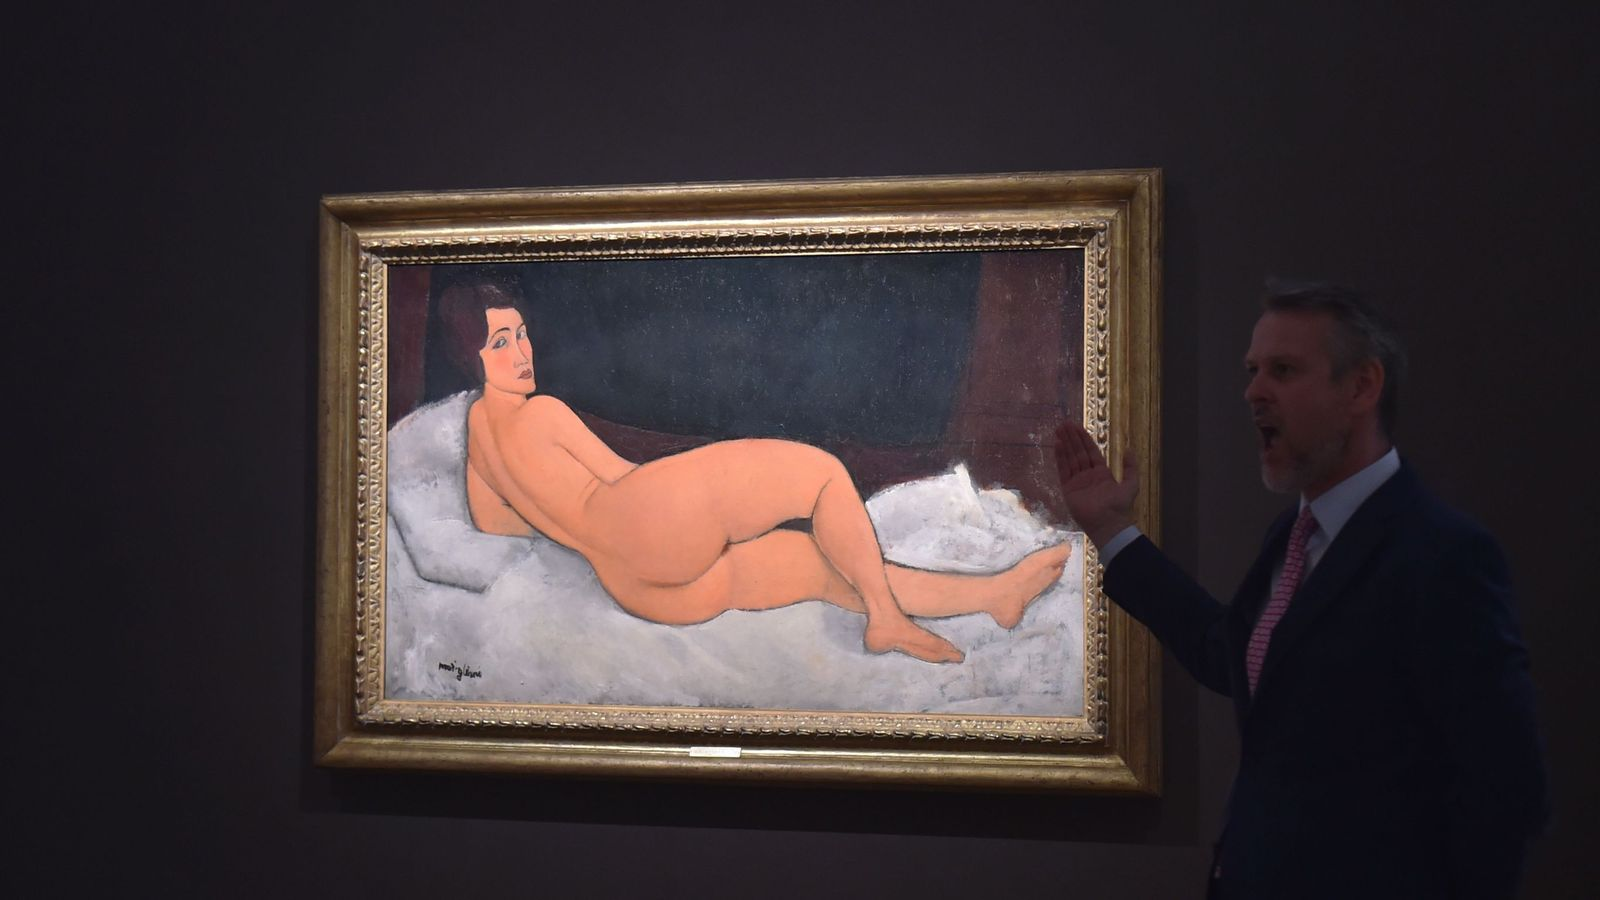 Modigliani nude painting sold at auction for $157.2m